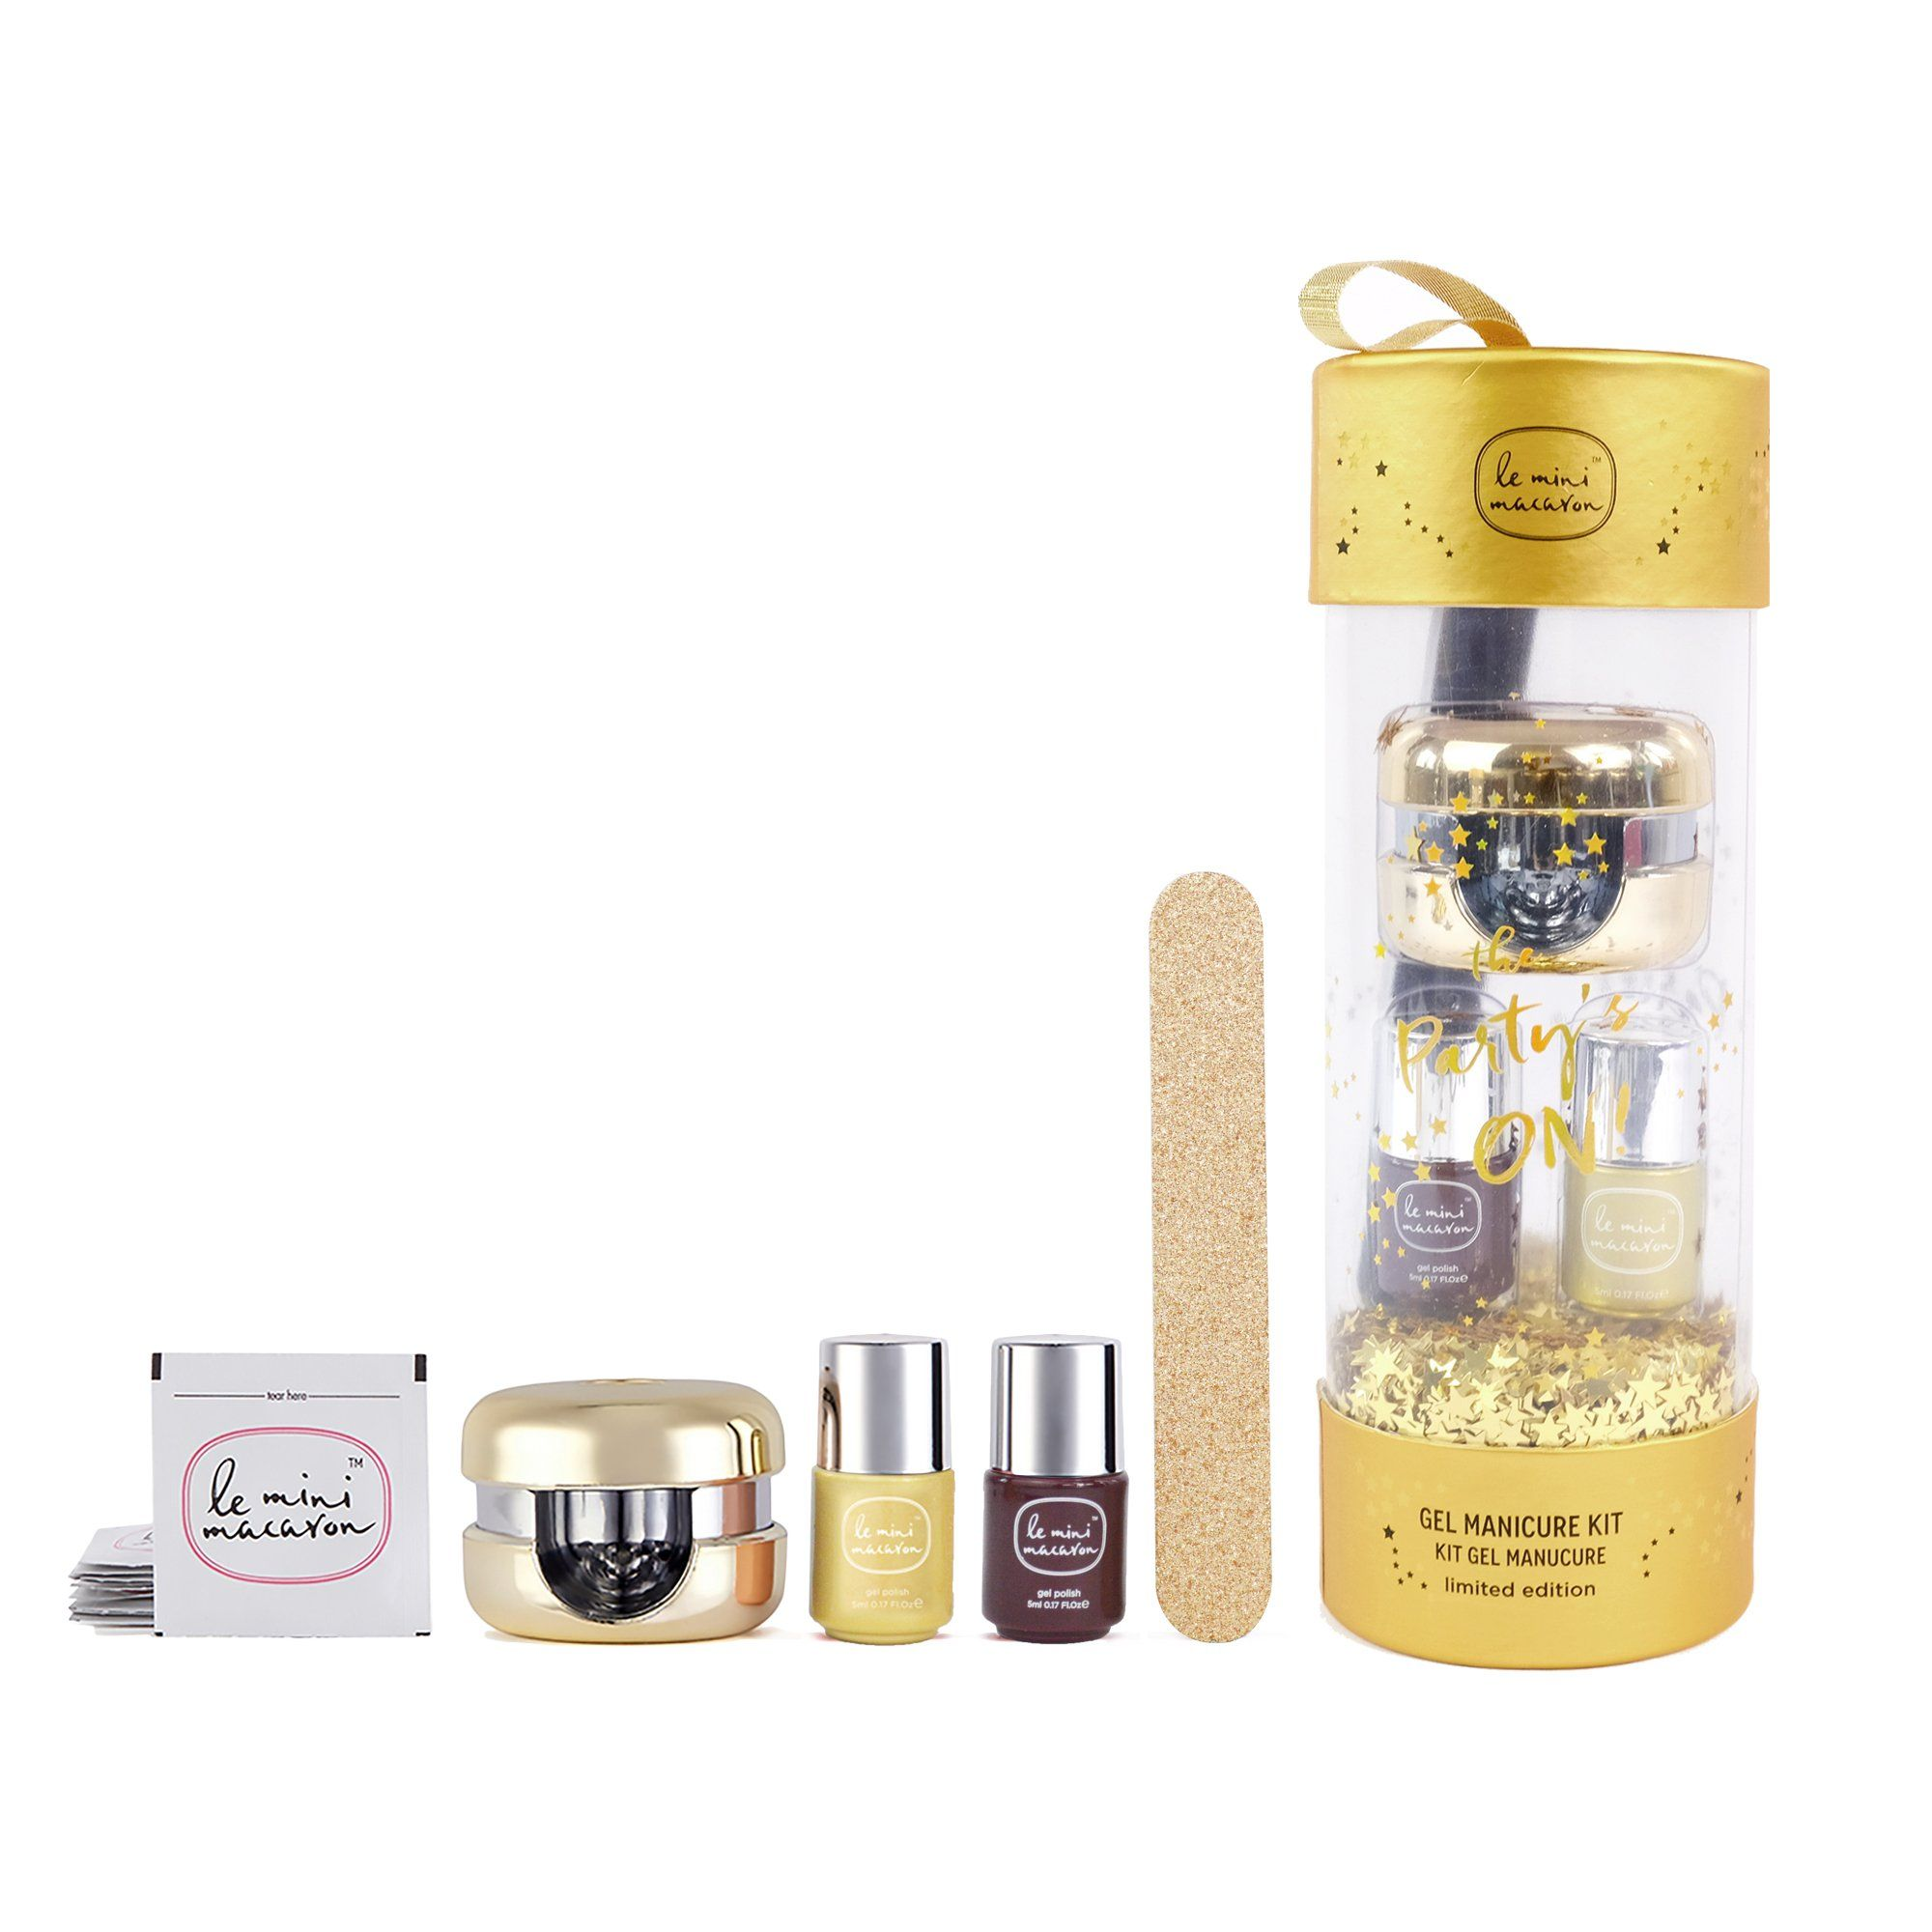 Limited Edition Gold Ornament Gift Set Gel Manicure Kit Camelia Beauty